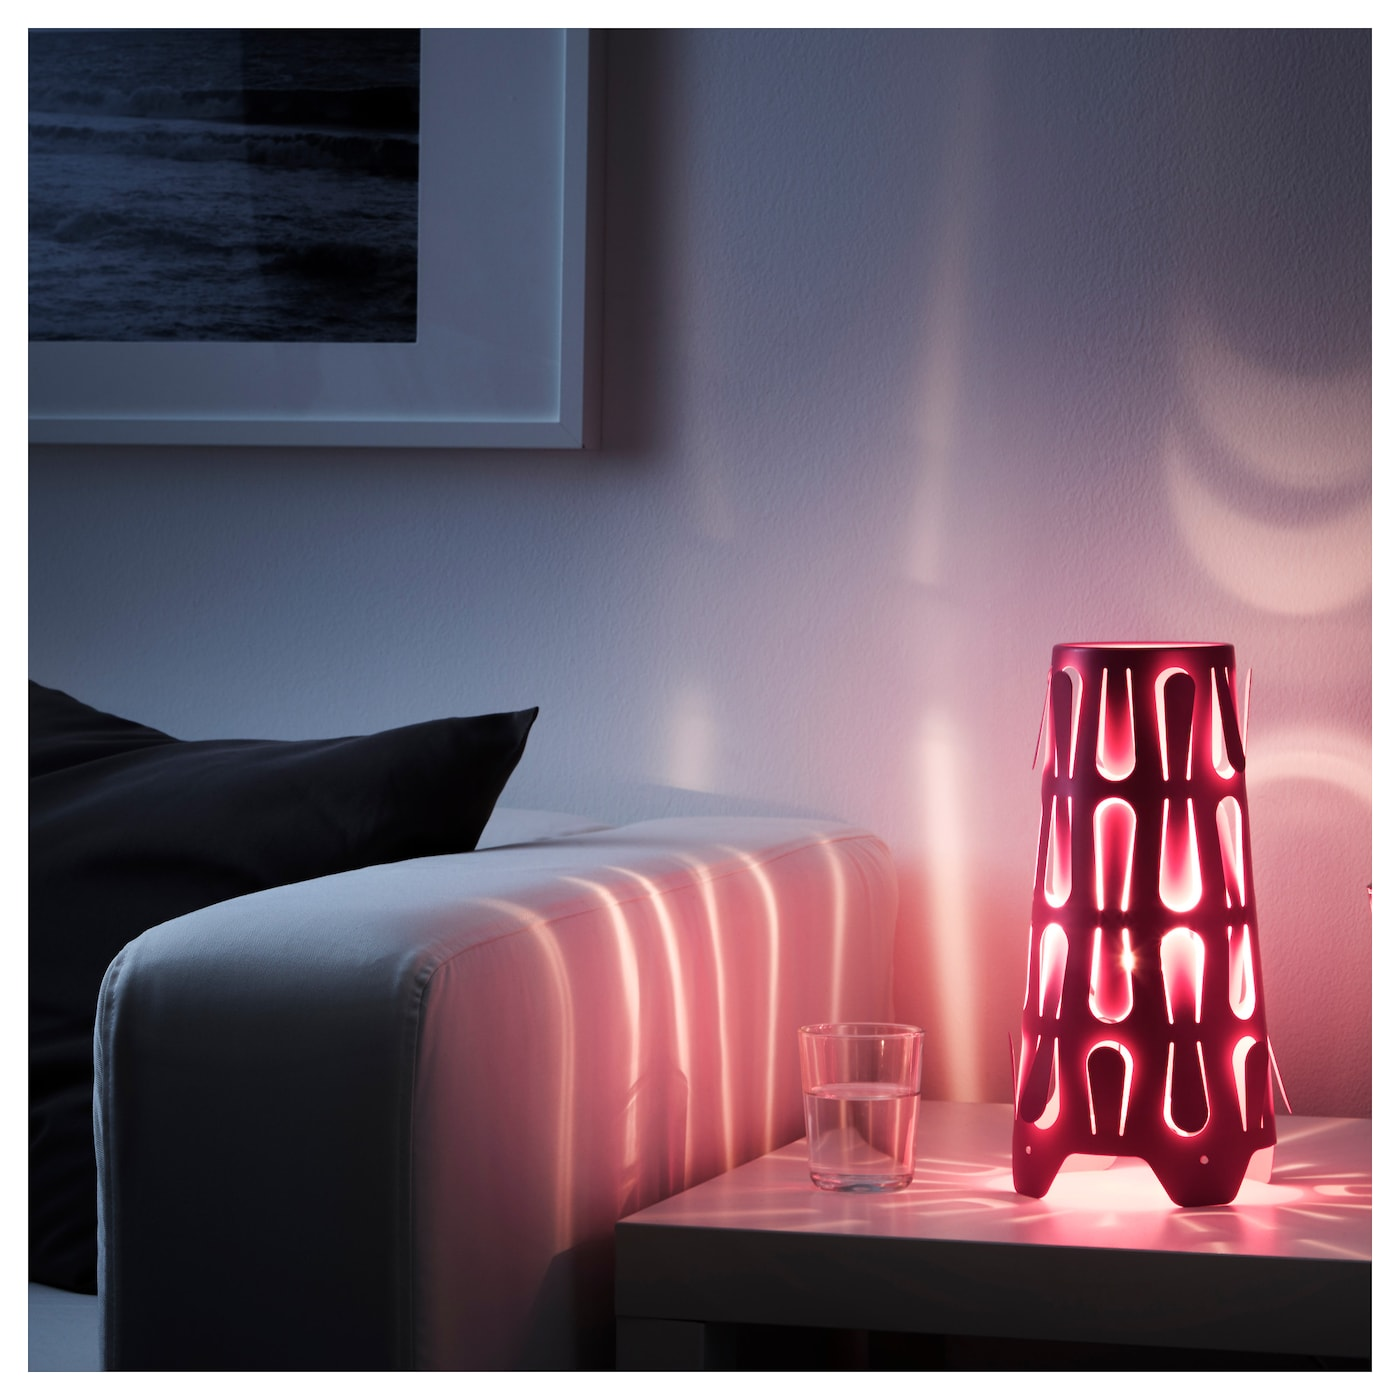 IKEA KAJUTA table lamp You can create your own light pattern by bending the tabs inward or outward.